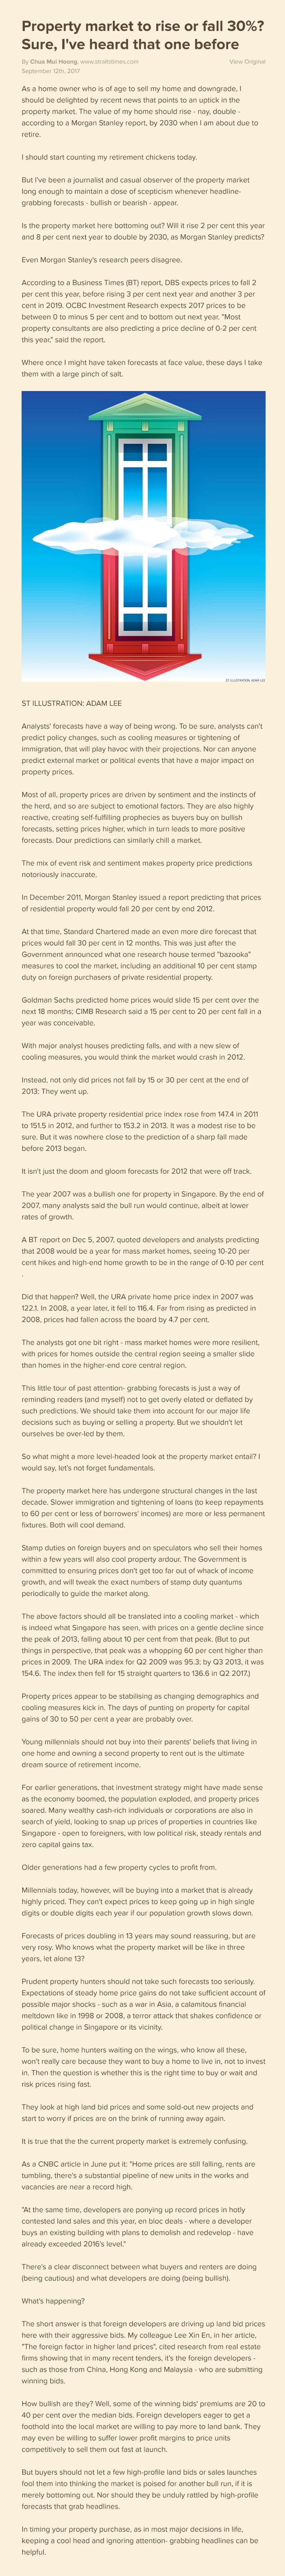 Property market to rise or fall 30%?